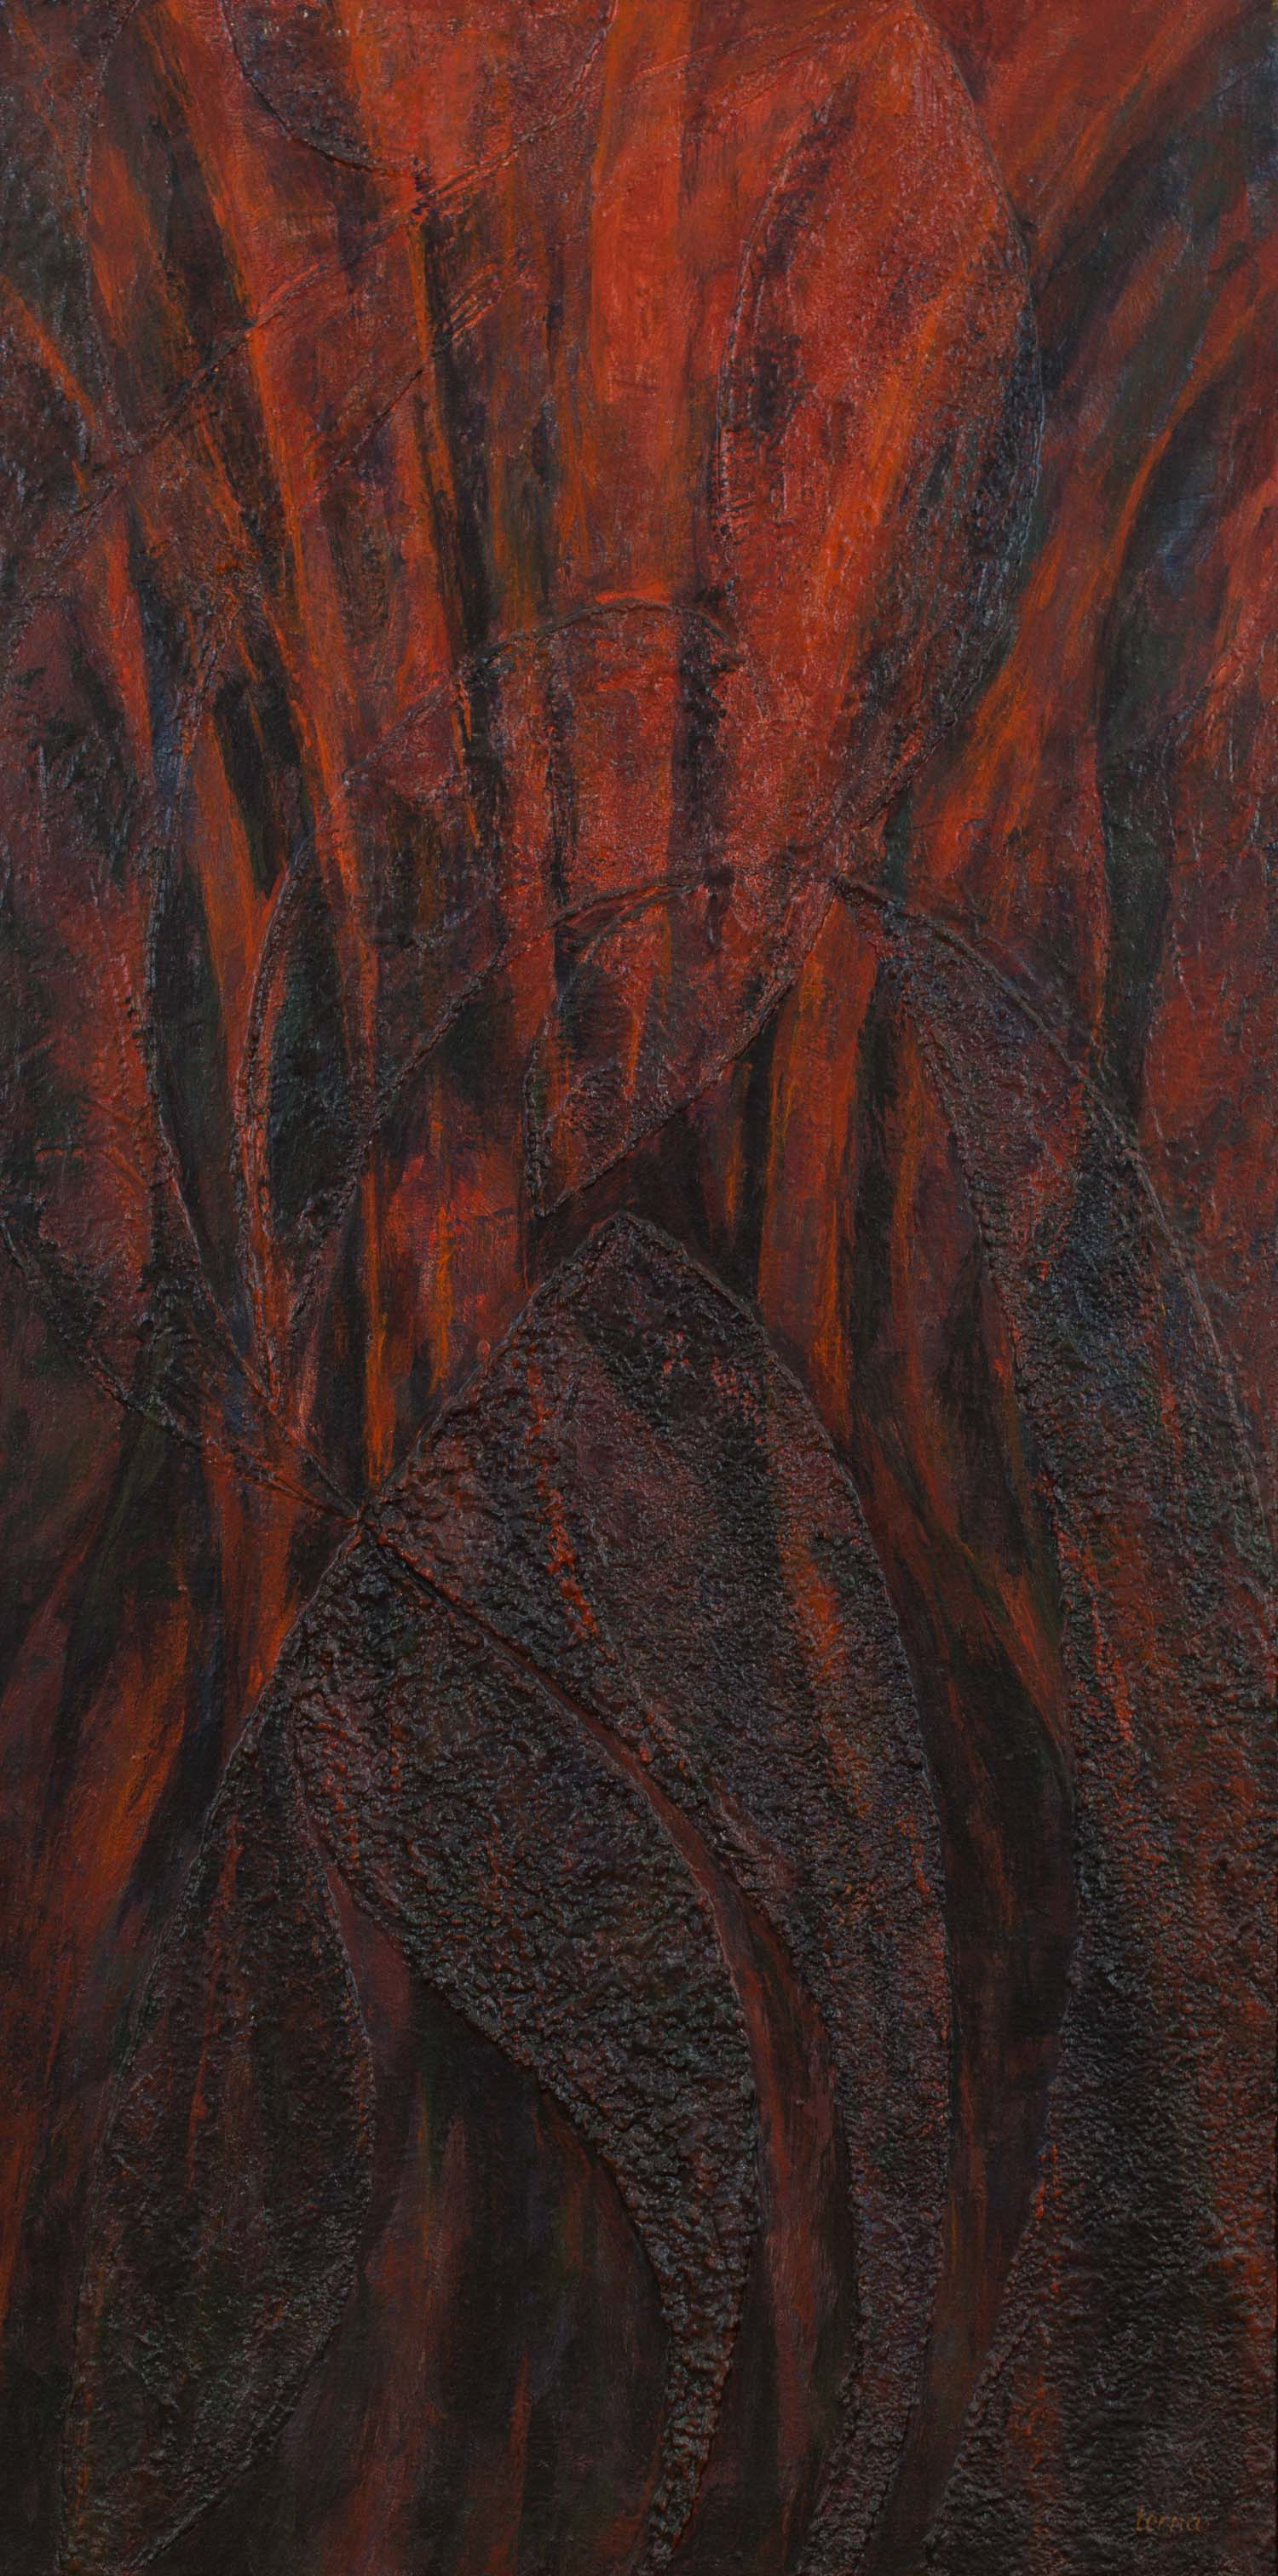 Flames to the Very Sky  , August 1983, Acrylic and aggregate on canvas, 48 x 24 inches